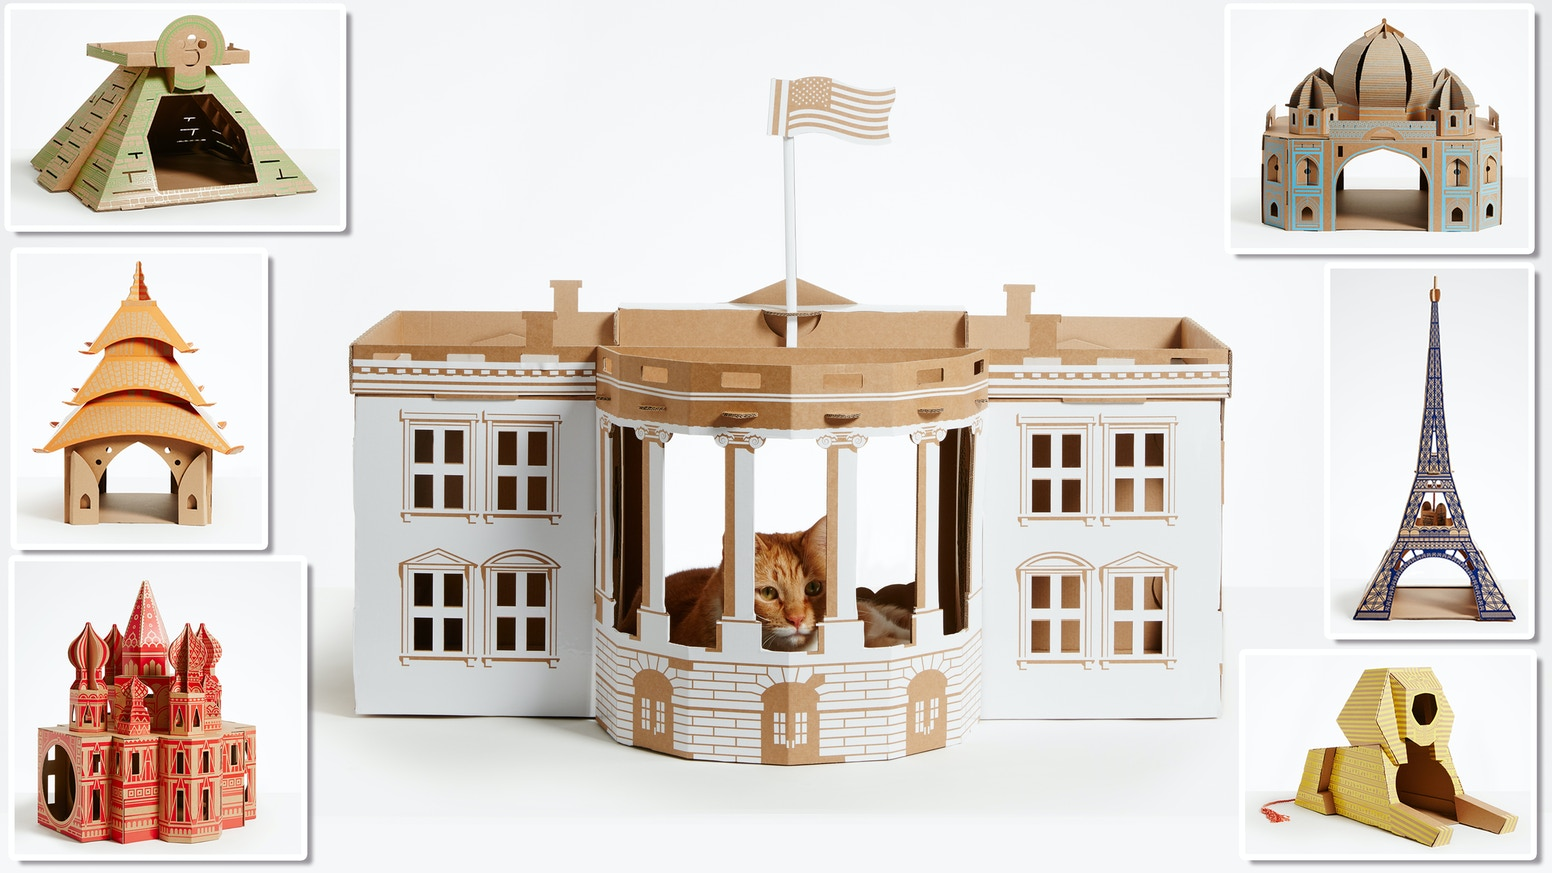 Cardboard House For Cats Cardboard Landmark Play Houses For Cats Dogs Small Pets By